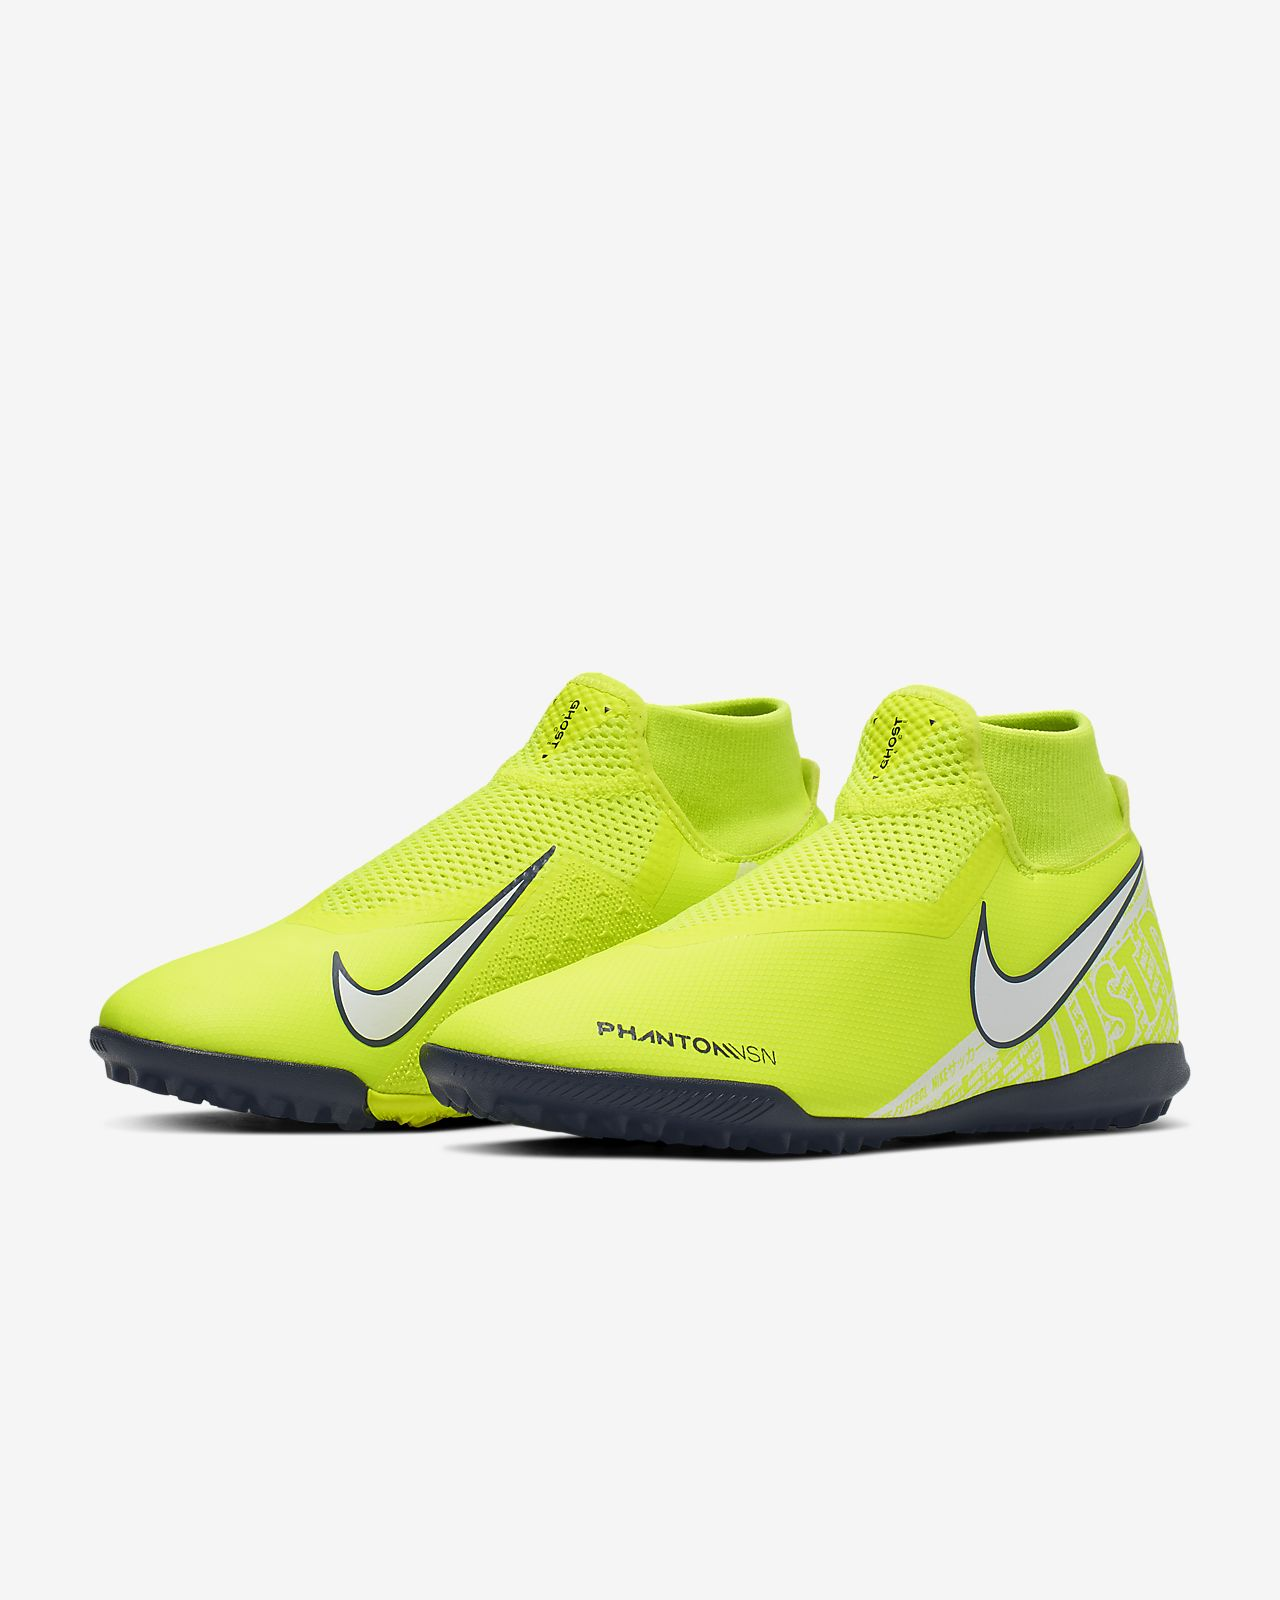 Nike Phantom Vision Academy Dynamic Fit TF Artificial Turf Football Boot